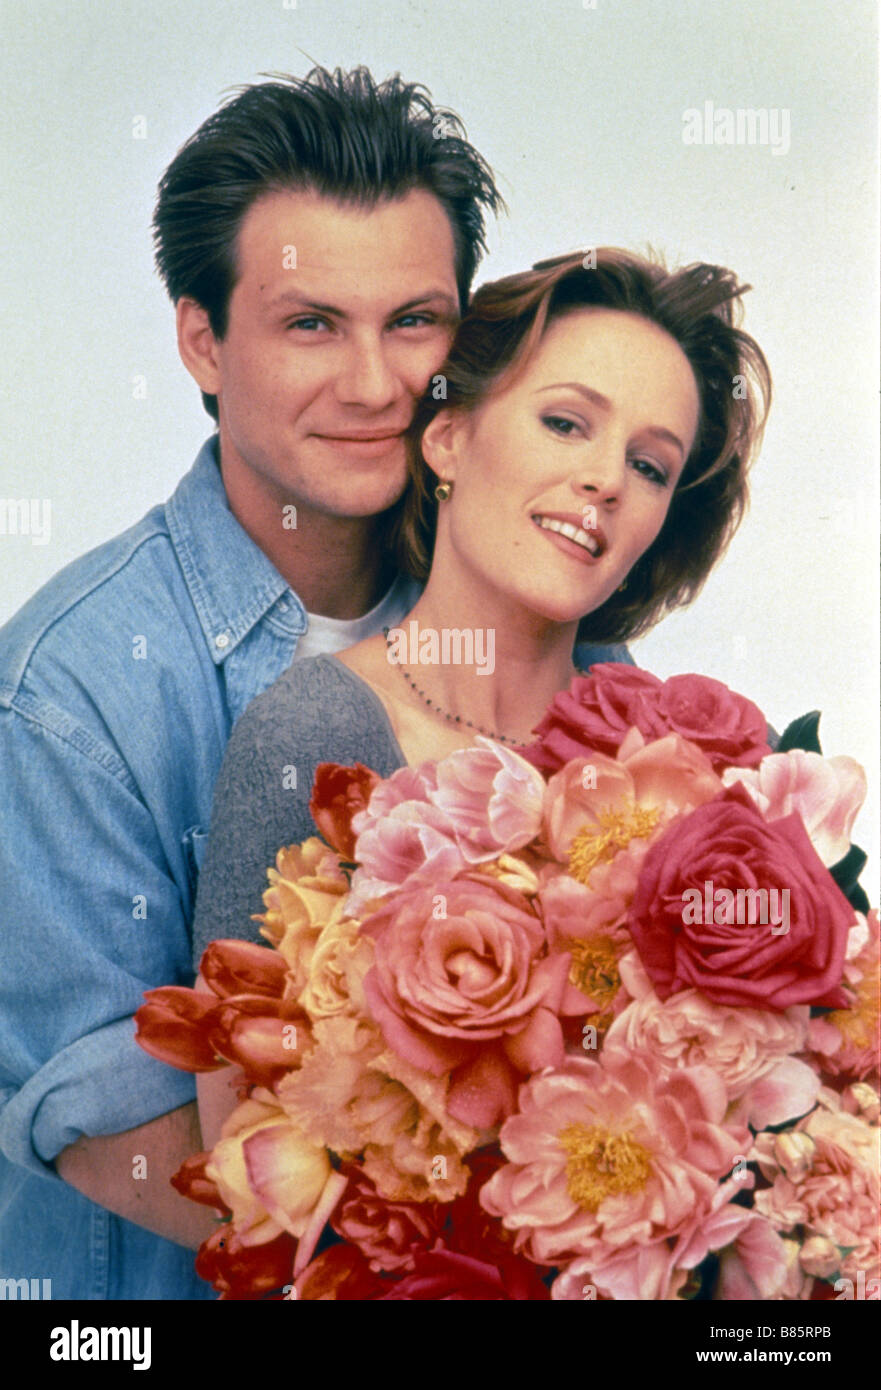 Bed of Roses  Année : 1996 - USA Christian Slater, Mary Stuart Masterson  Director : Michael Goldenberg Stock Photo